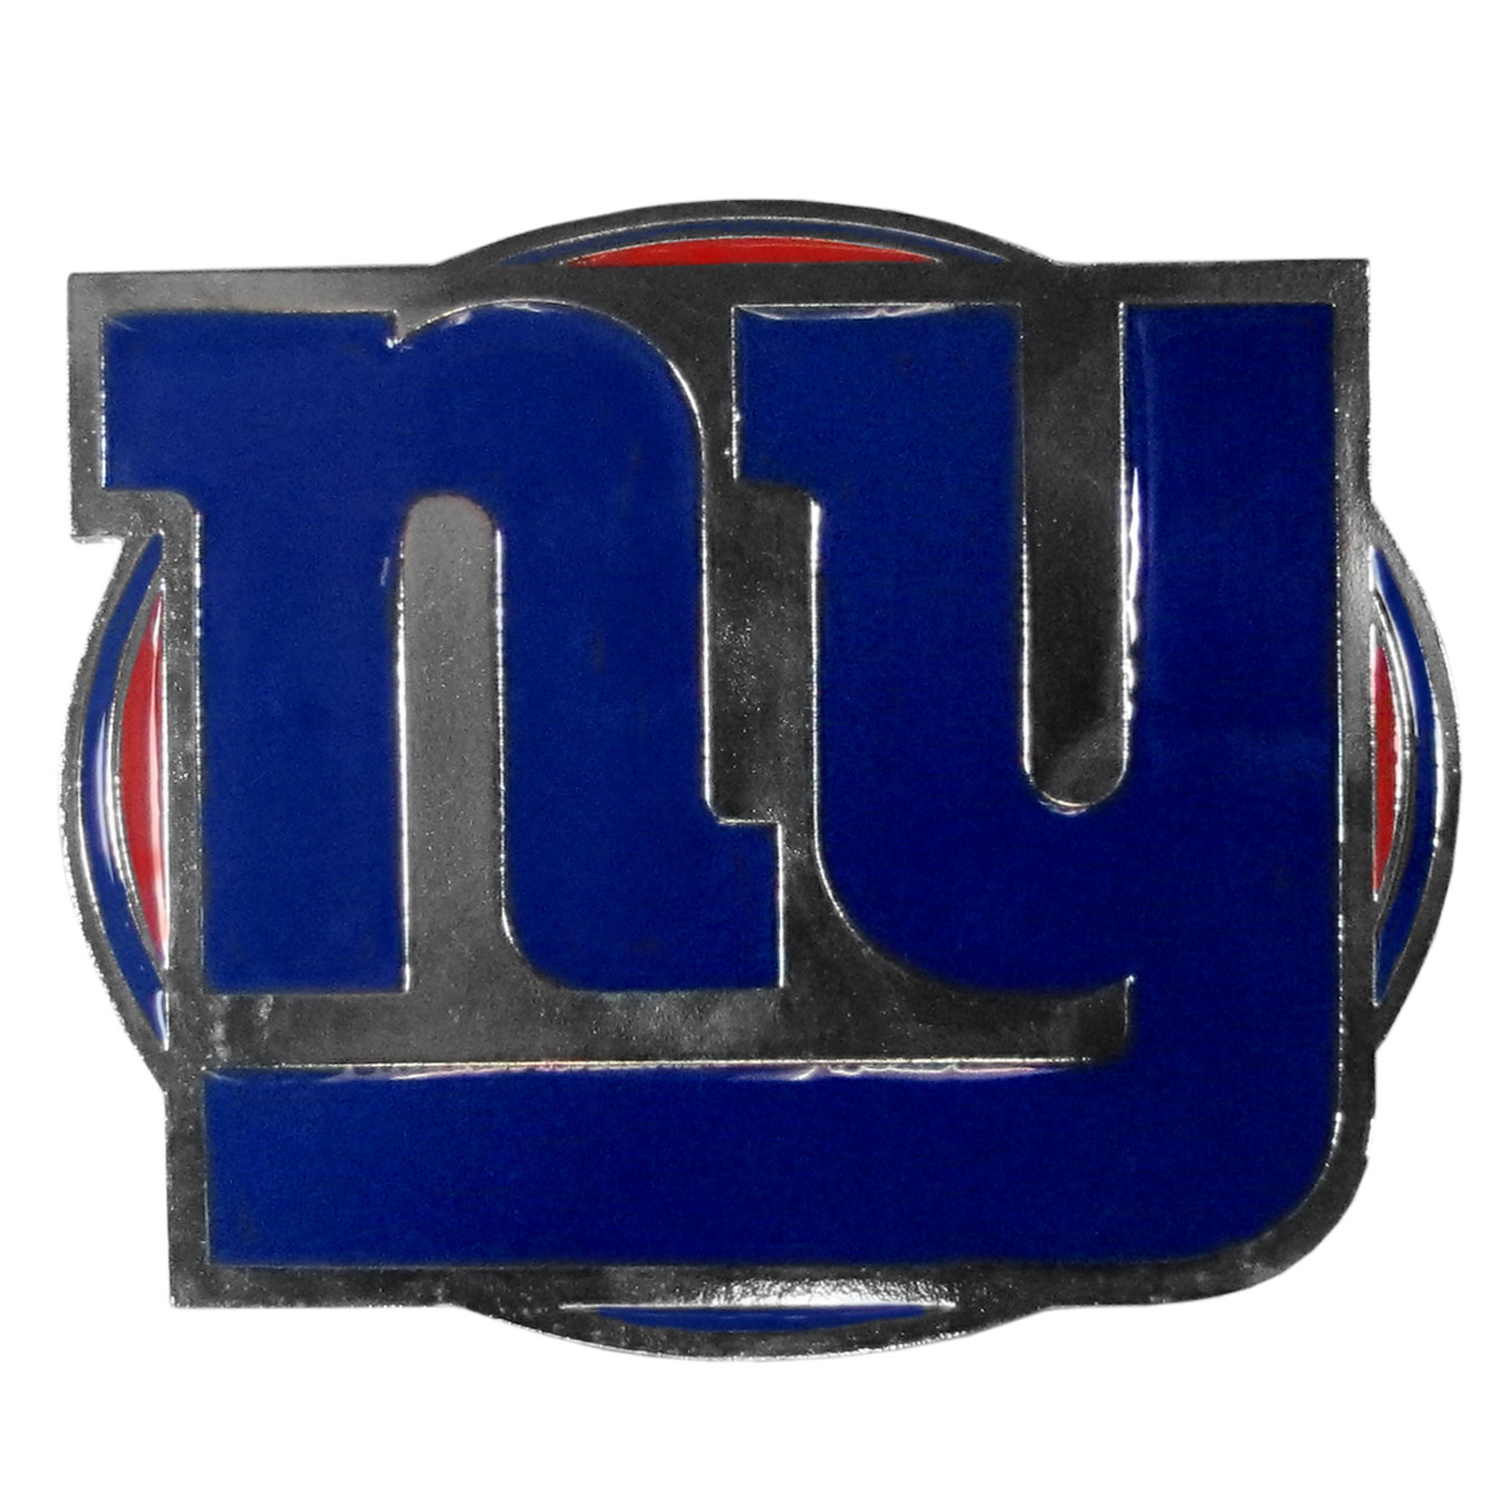 New York Giants Hitch Cover Class III Wire Plugs - Our lighter weight, full-metal hitches are still tougher than your average hitch cover at 1/8 of an inch thick. The heavy-duty cast zinc hitch plate feature the New York Giants logo with enameled detail. The wire hitch plugs are included for the class III hitch receivers.